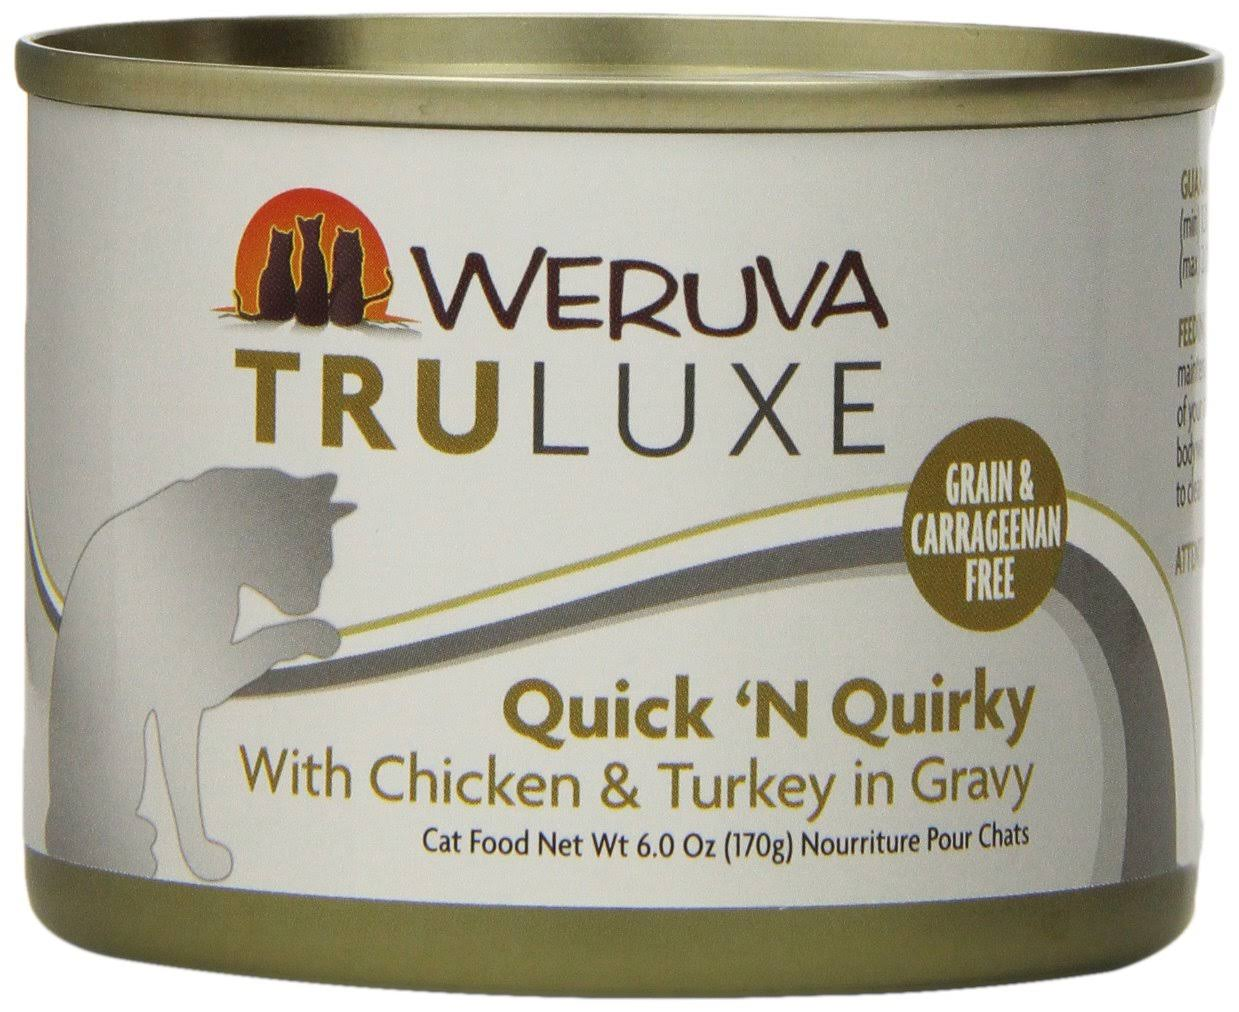 Weruva Truluxe Quick 'N Quirky Single Canned Cat Food - Chicken & Turkey